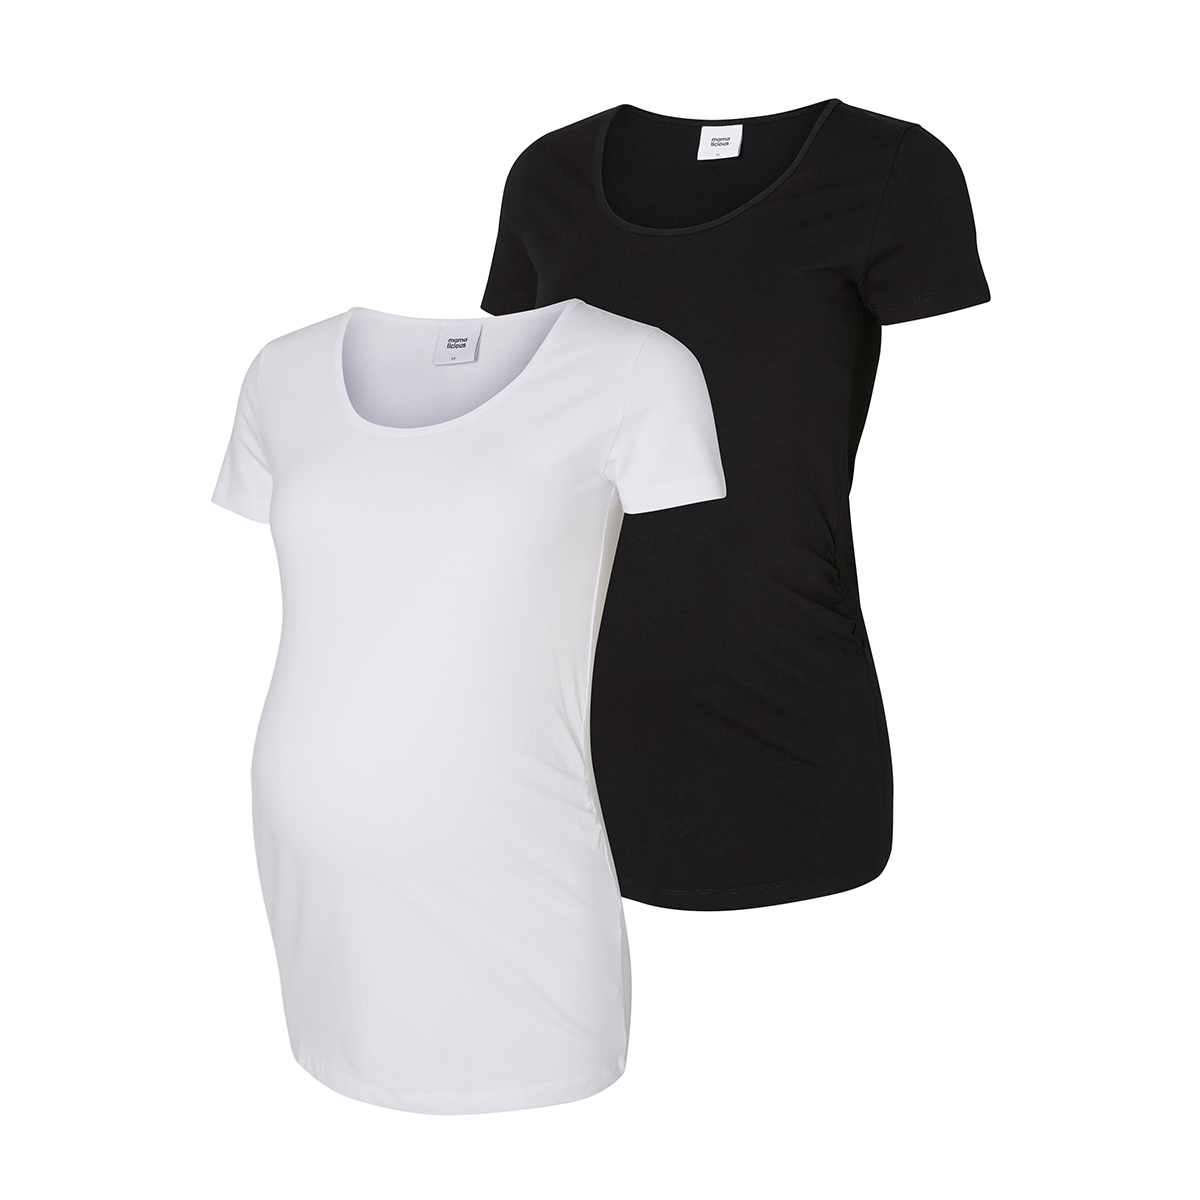 mllea organic s/s top 2pack 20006296 mama-licious positie shirt black/packed w s